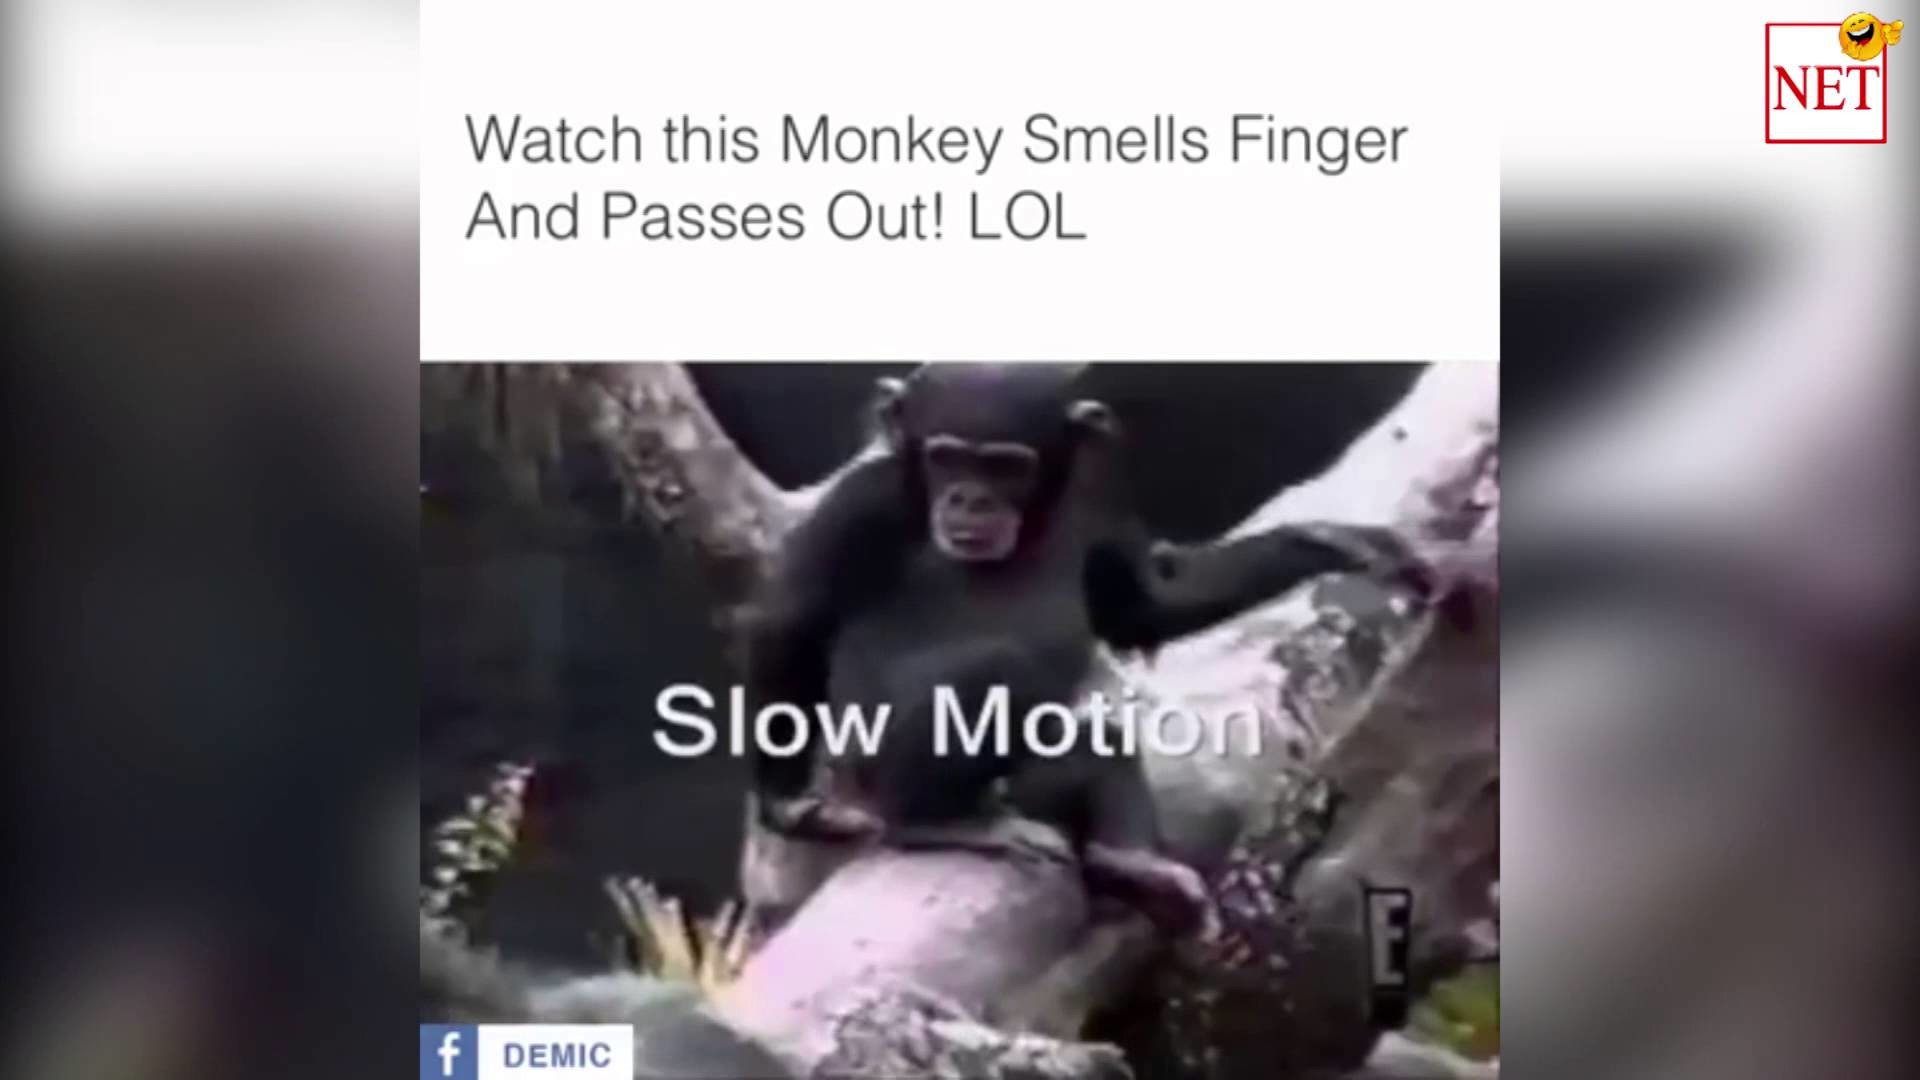 Res: 1920x1080, Watch this monkey smell its finger and pass out